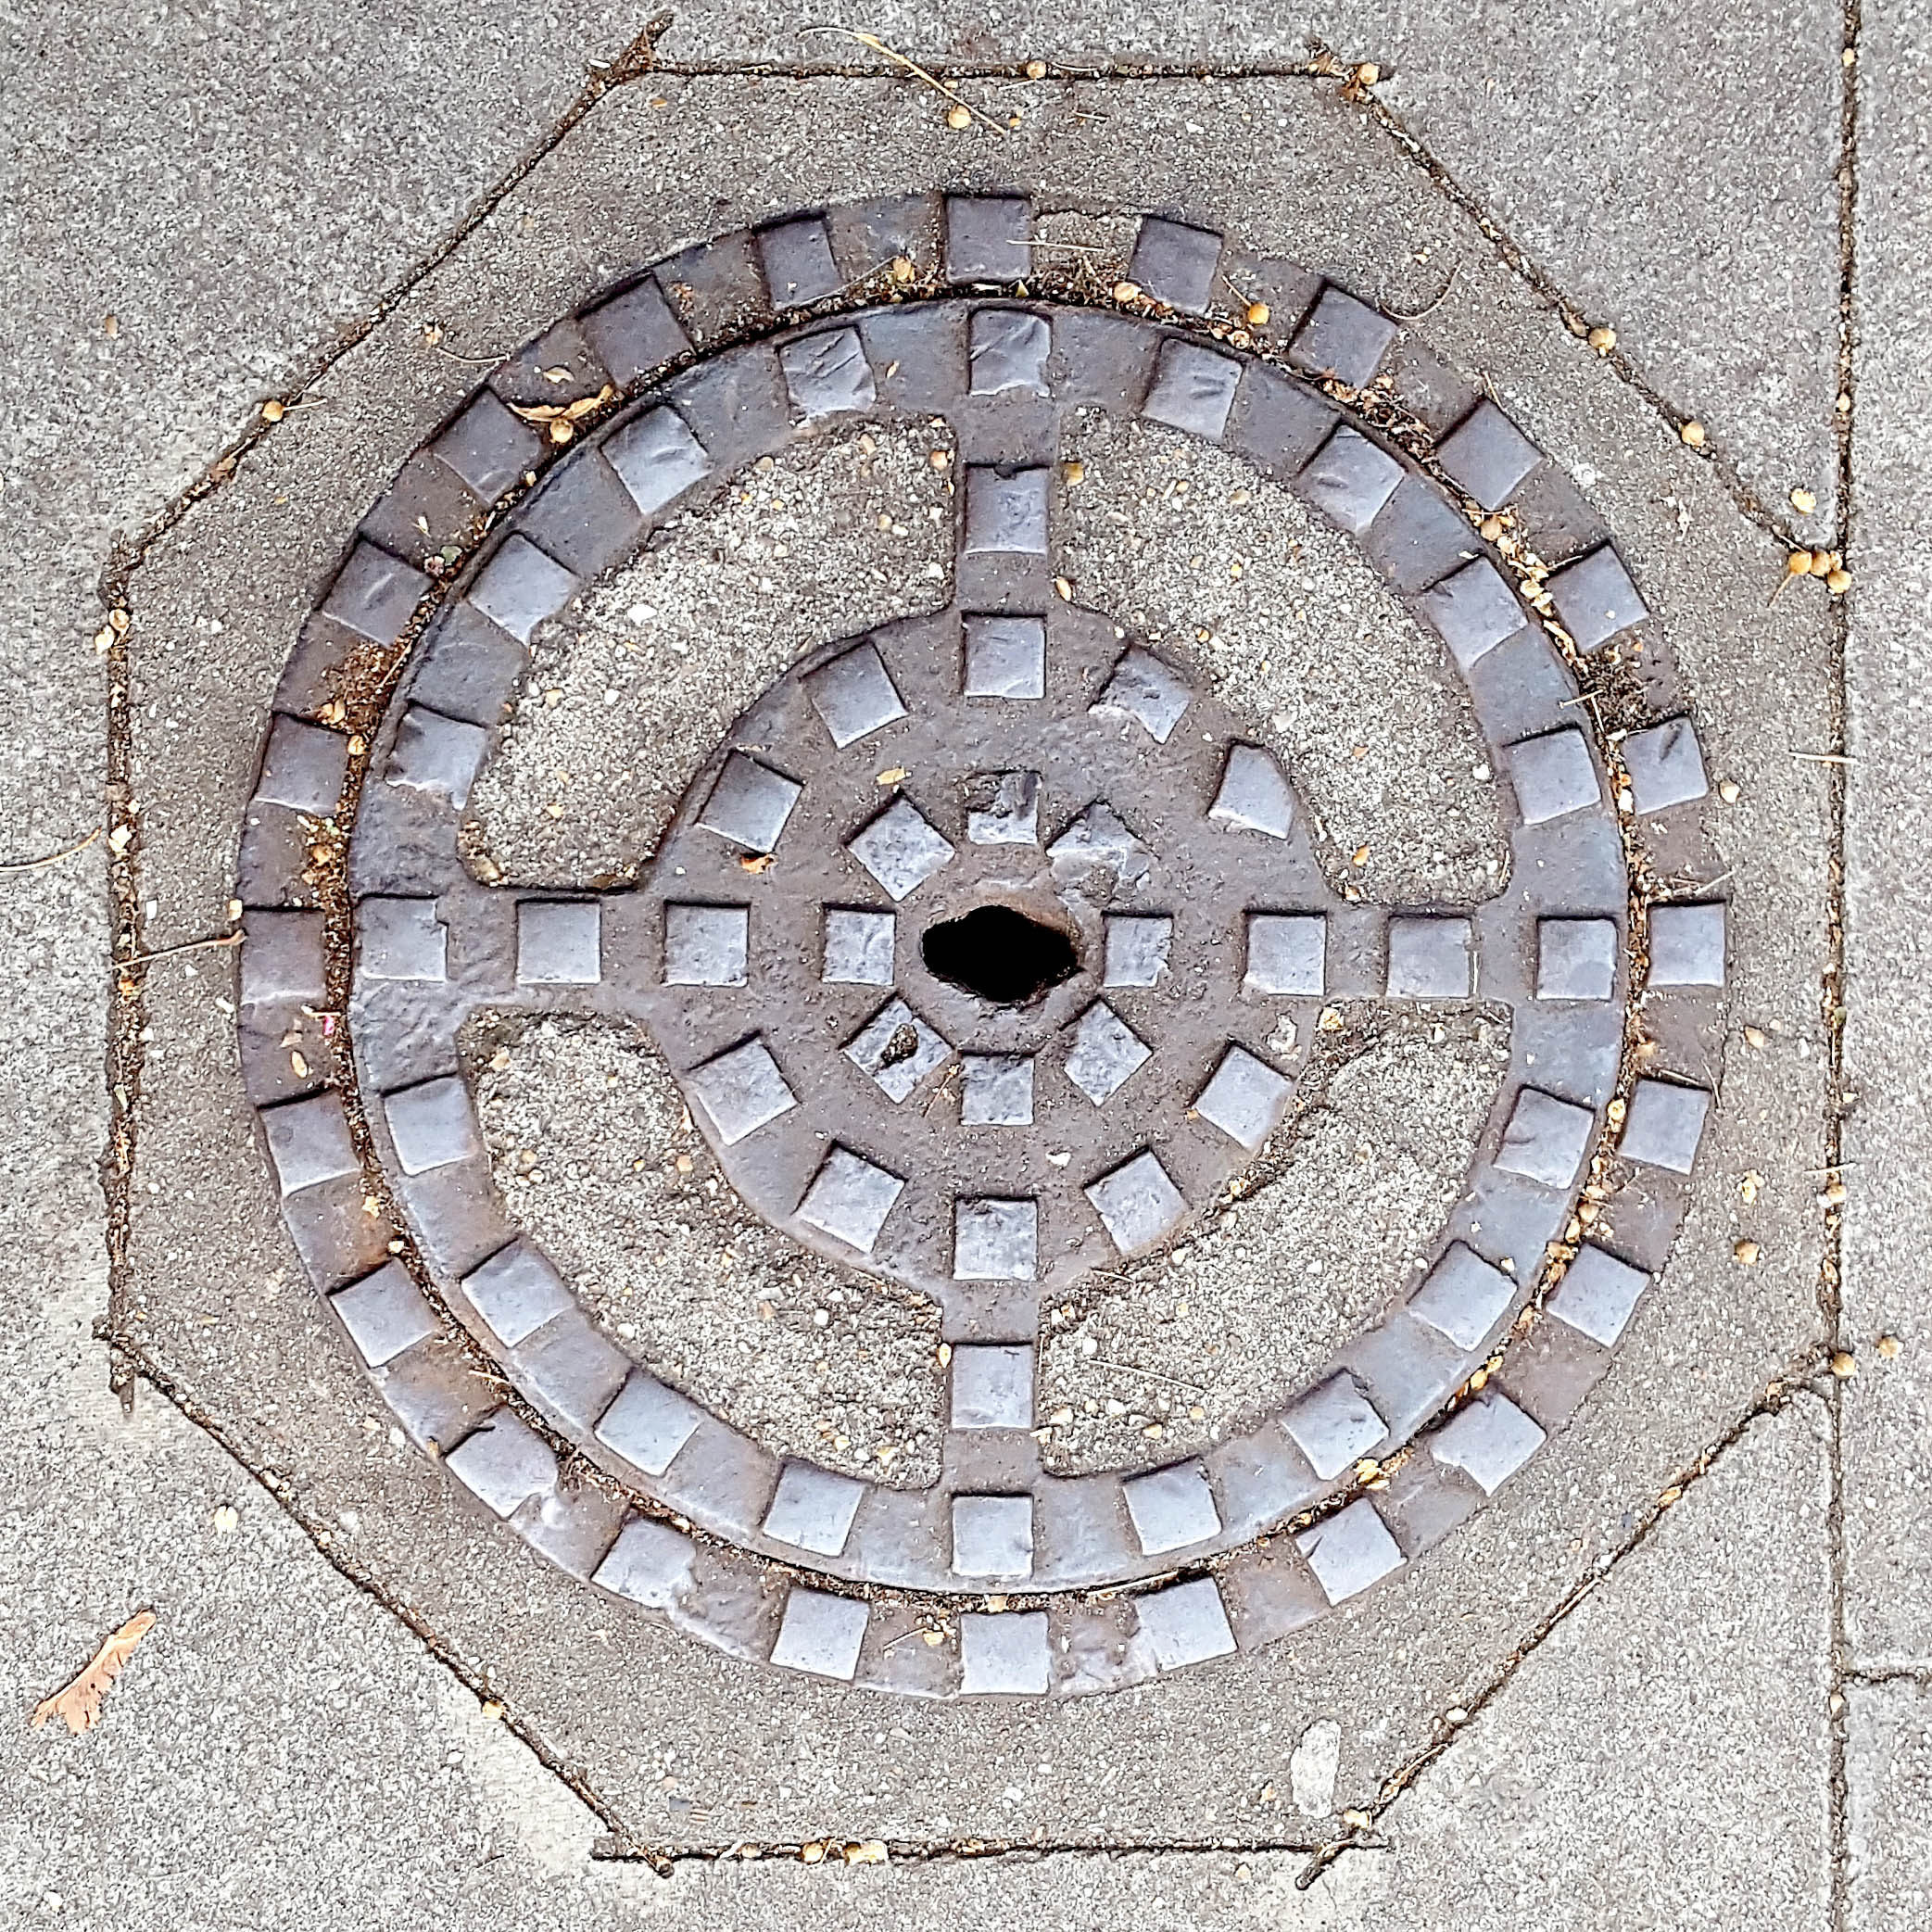 Manhole Cover, London - Cast iron with raised squares and concrete sections